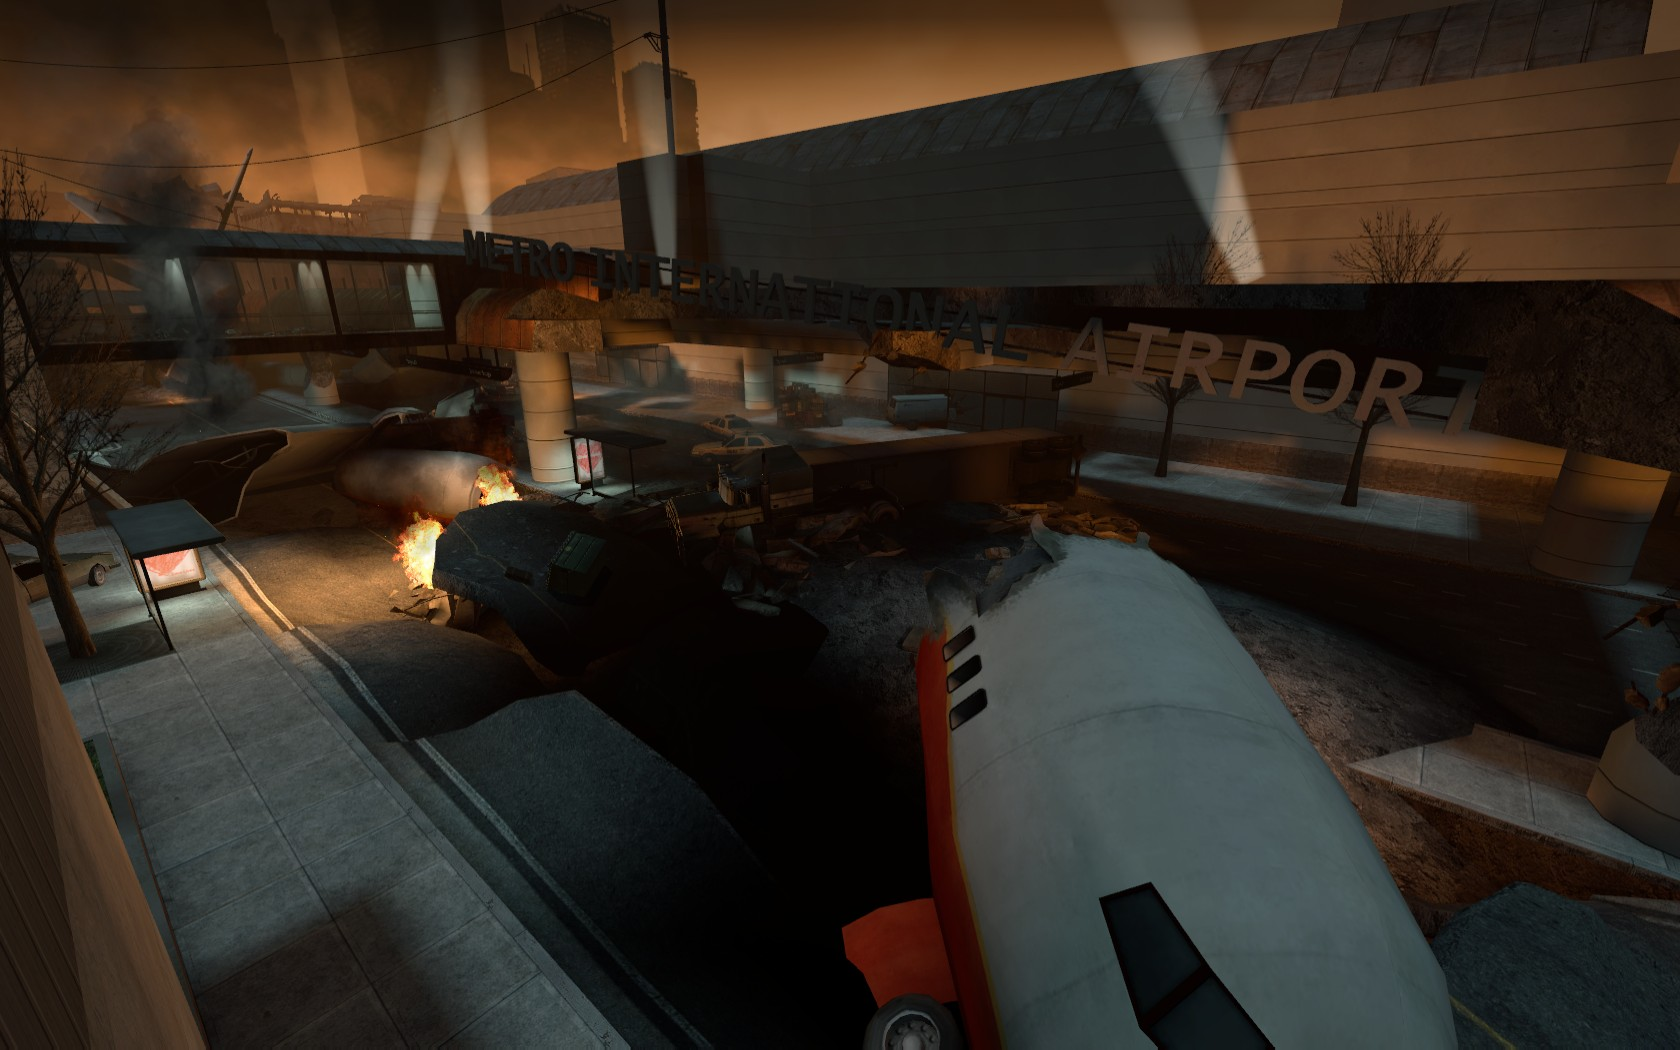 L4d airport03 garage0036.png